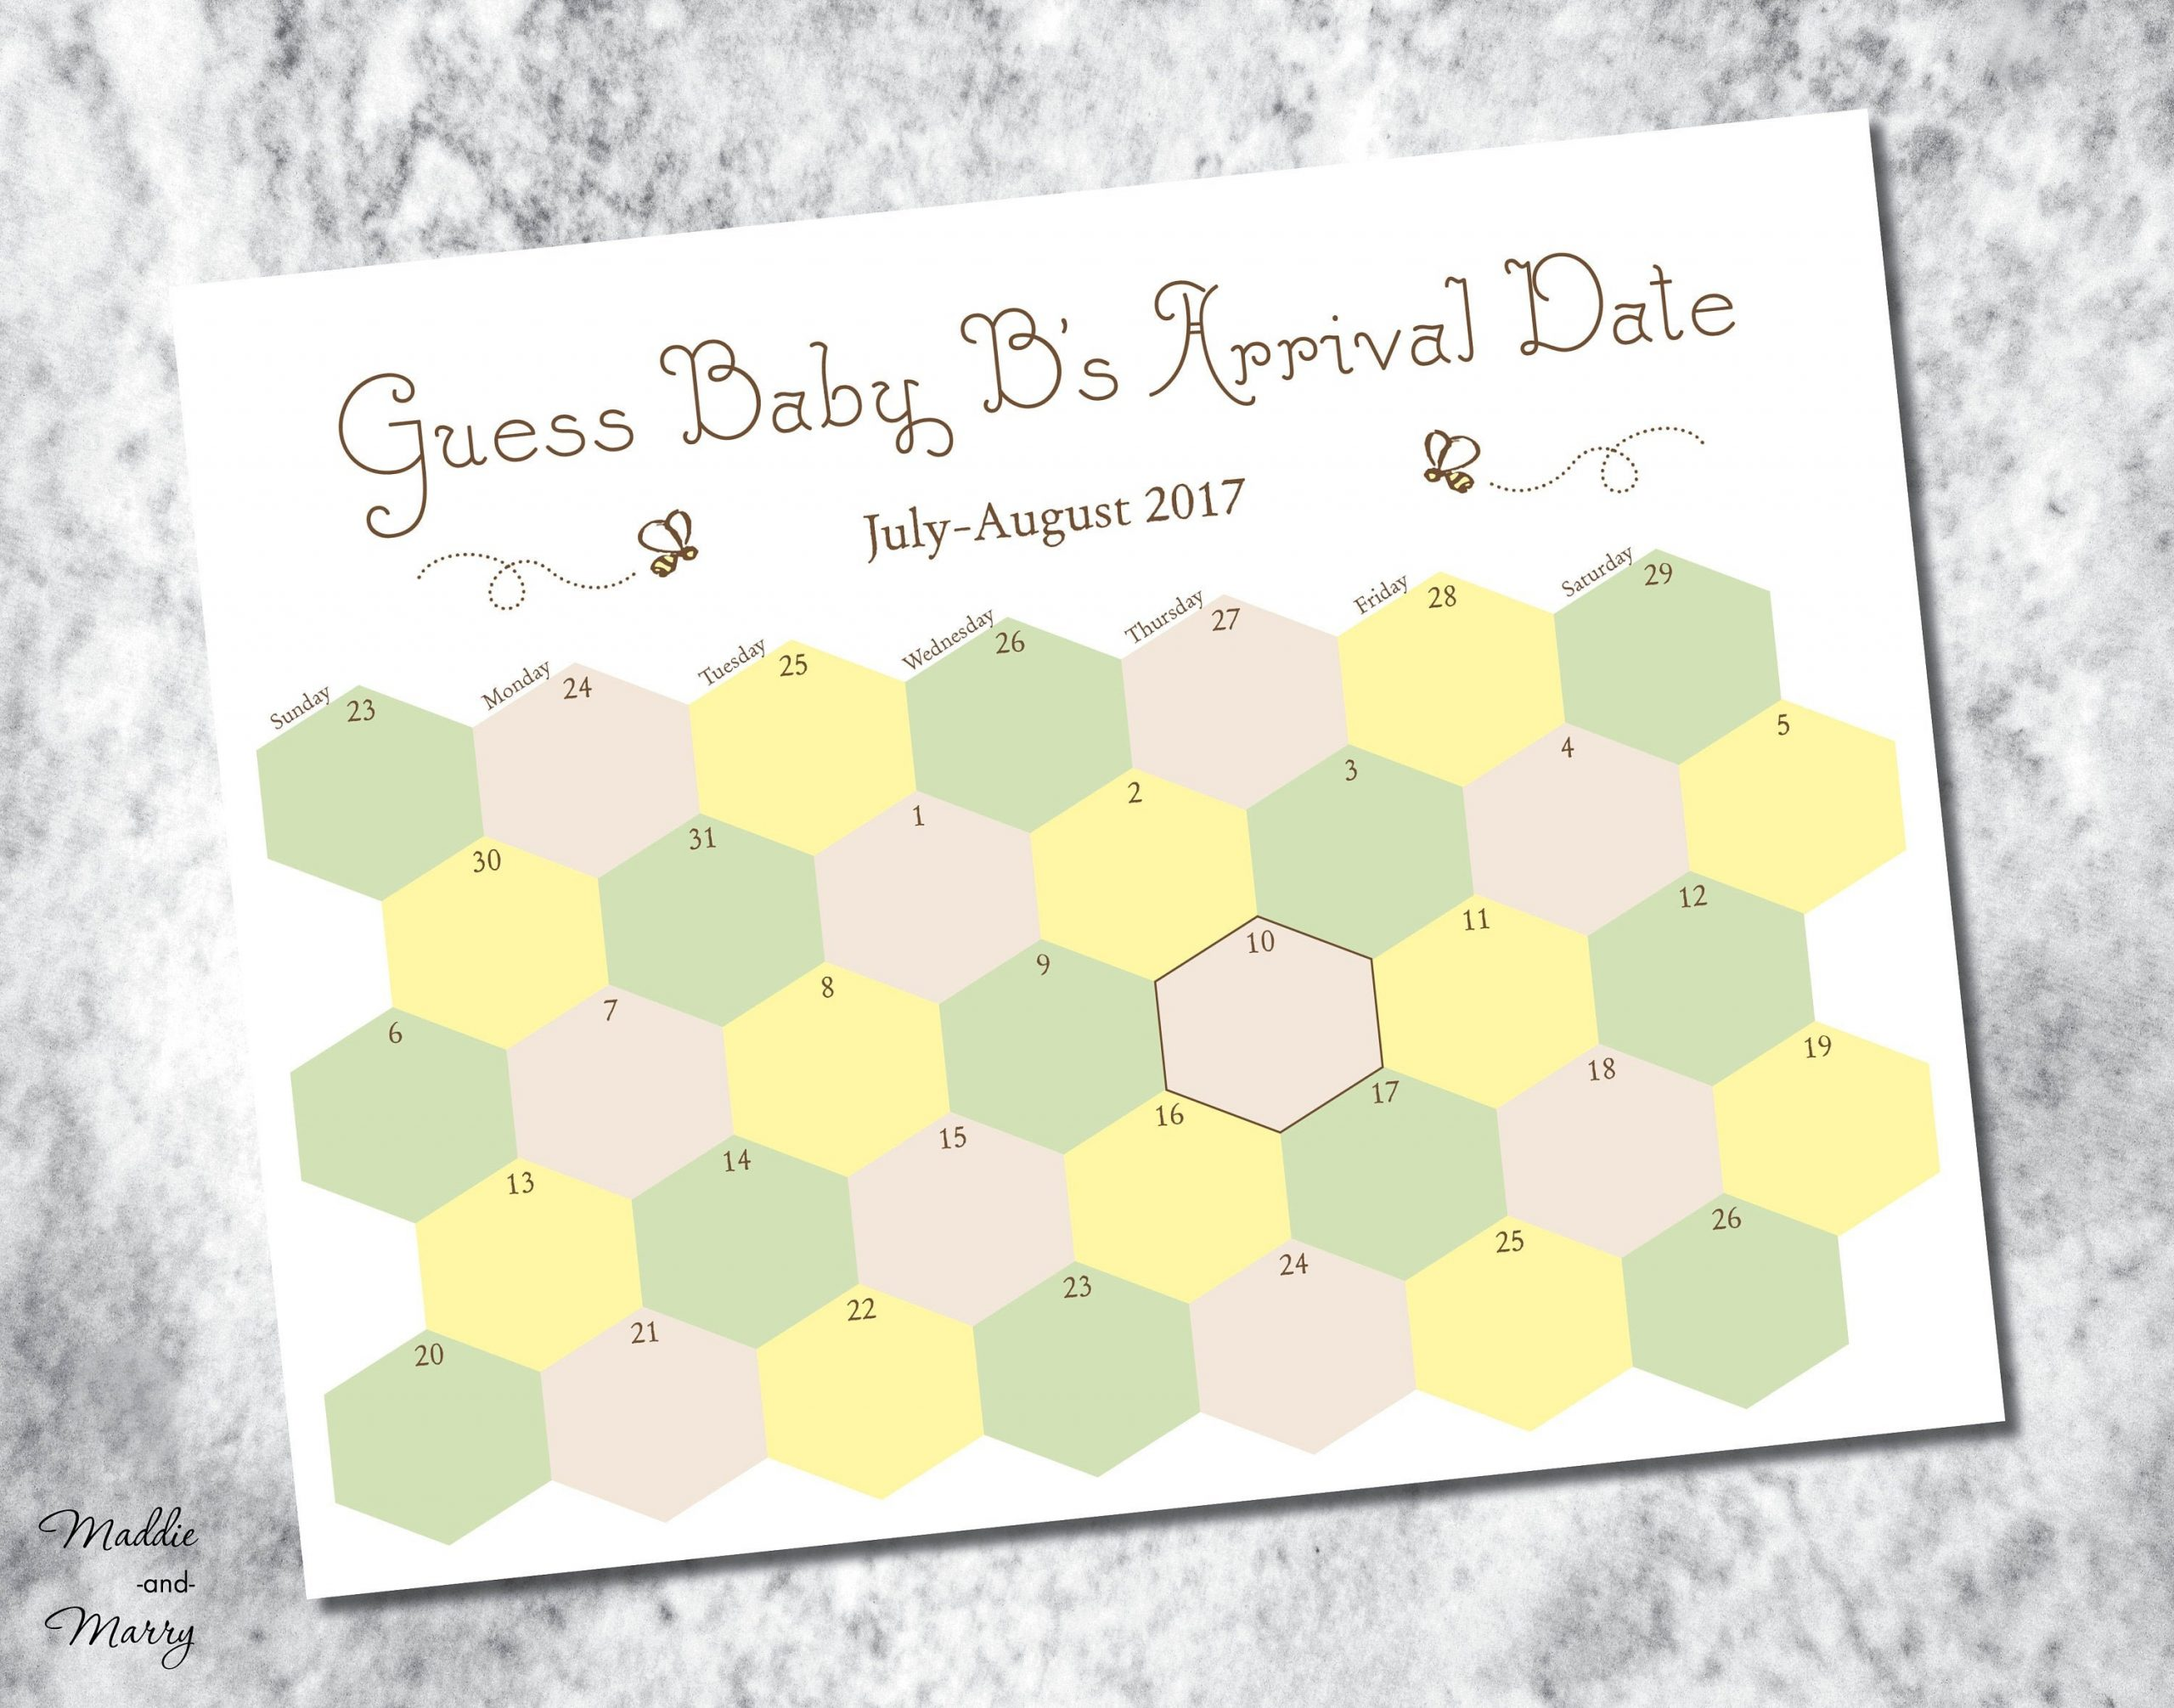 Printable Due Date Guess Baby'S Arrival Calendar | Etsy Guess The Baby'S Arrival Date